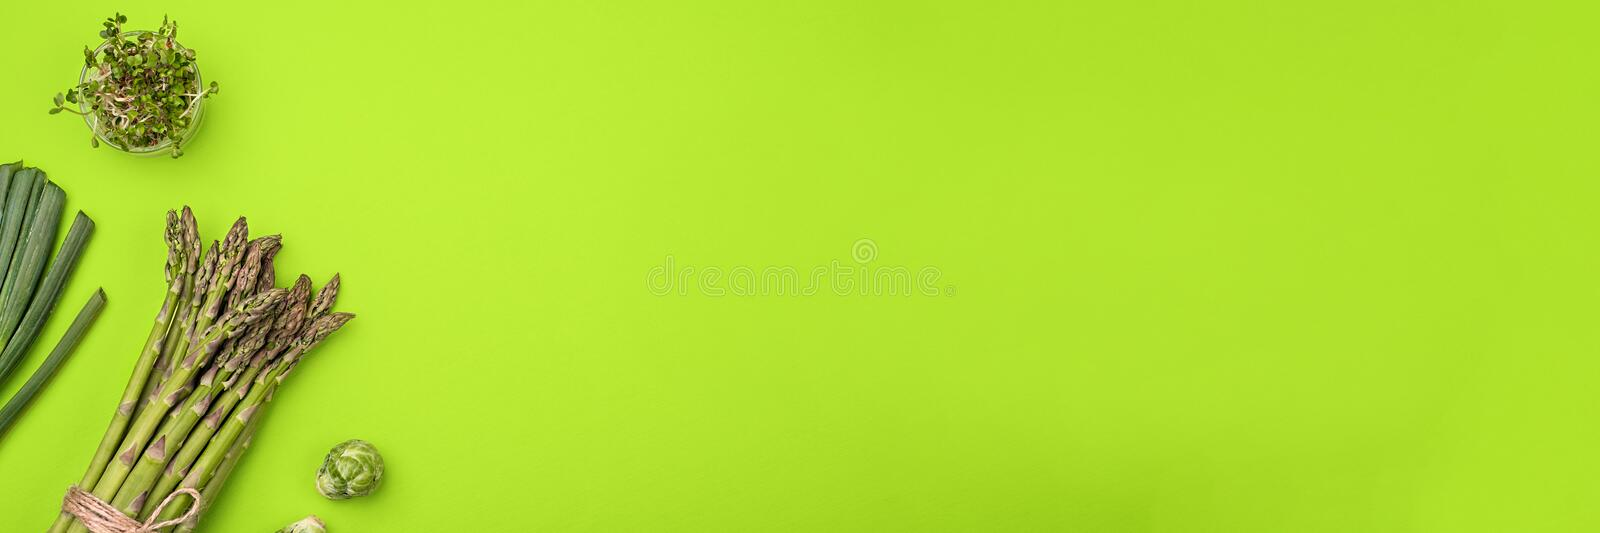 Green vegetables flat lay concept on green background royalty free stock images